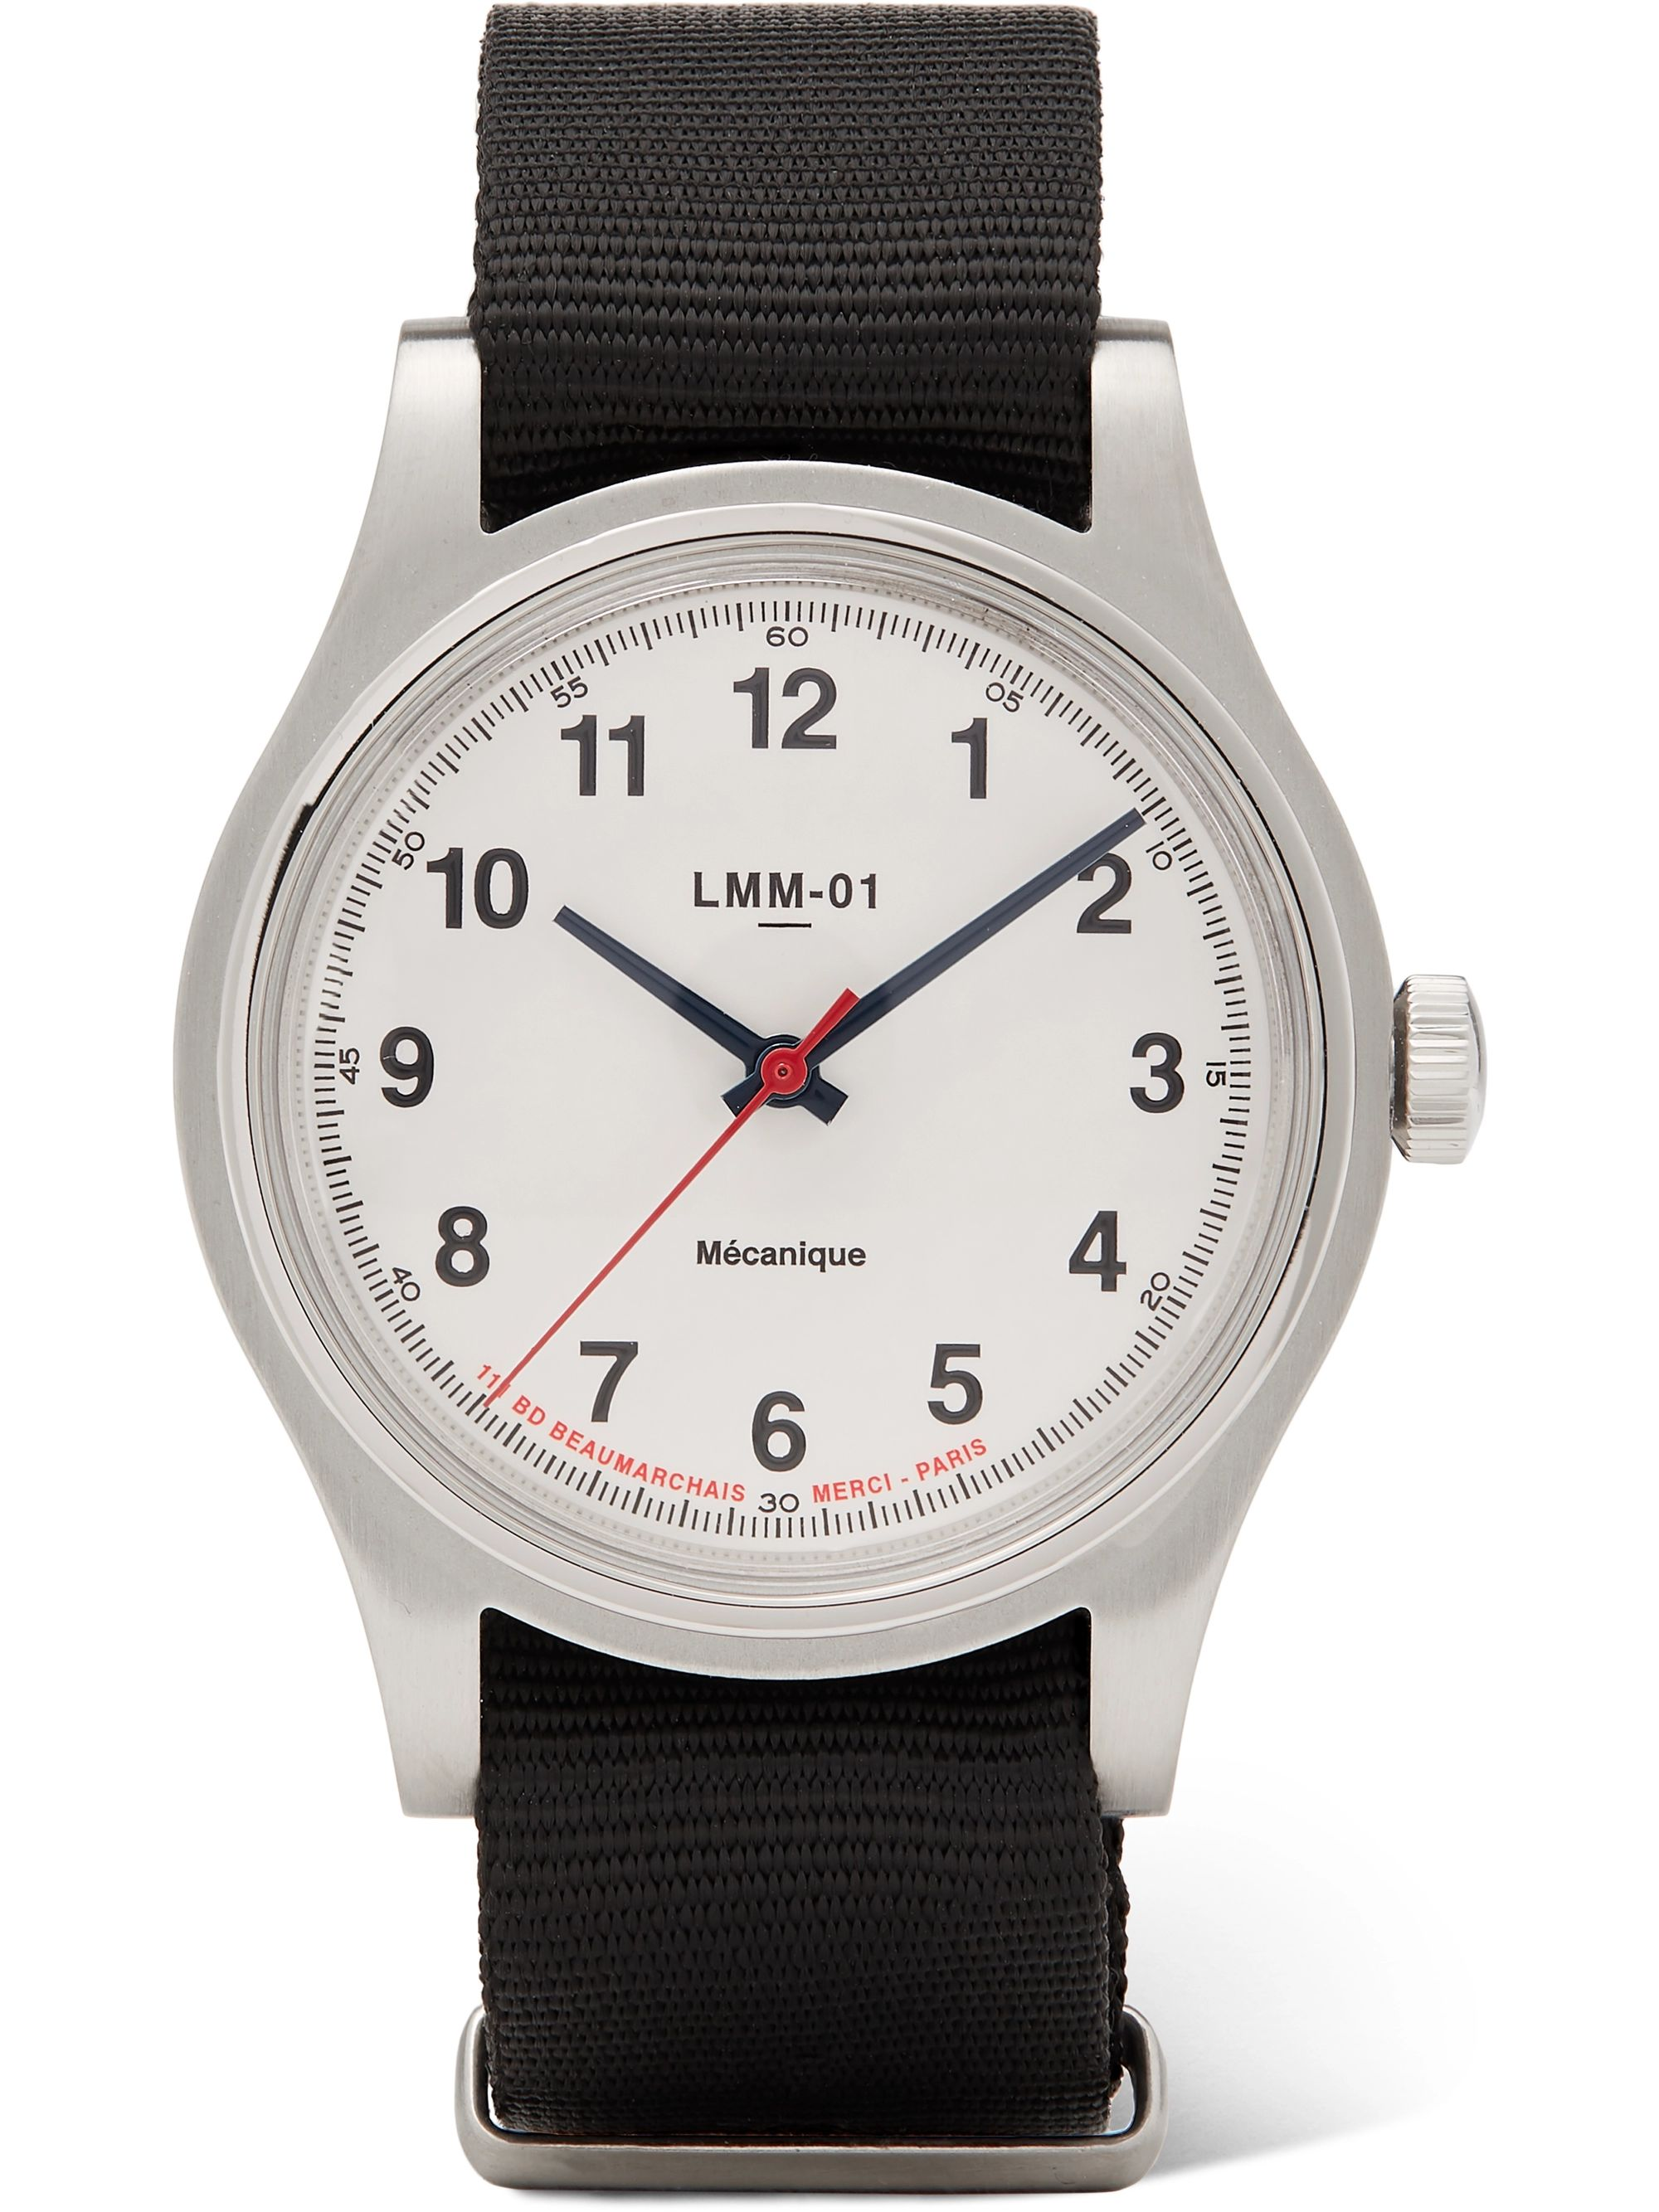 Merci LMM-01 Originals 37.5mm Stainless Steel and NATO Webbing Watch